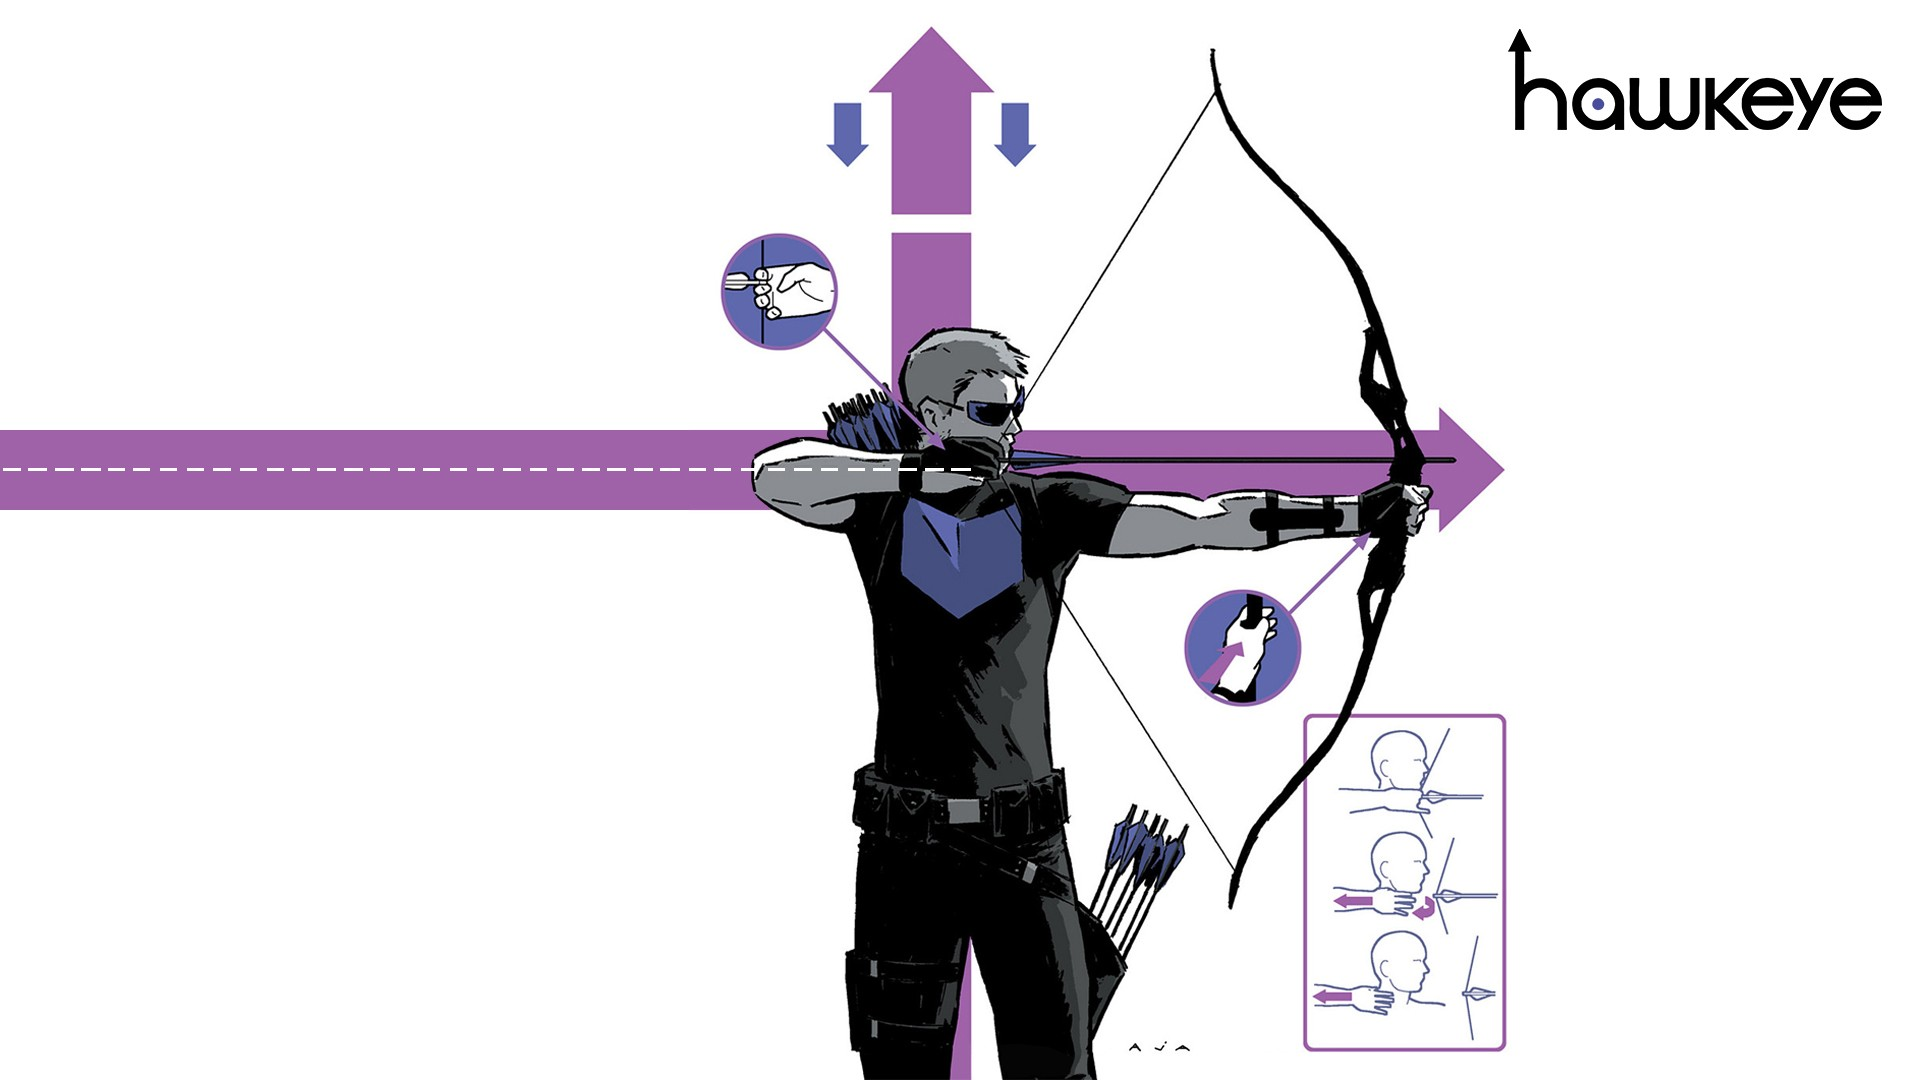 hawkeye david aja stimulated boredom Comic Book Review: Hawkeye Vol 1 My Life as a Weapon